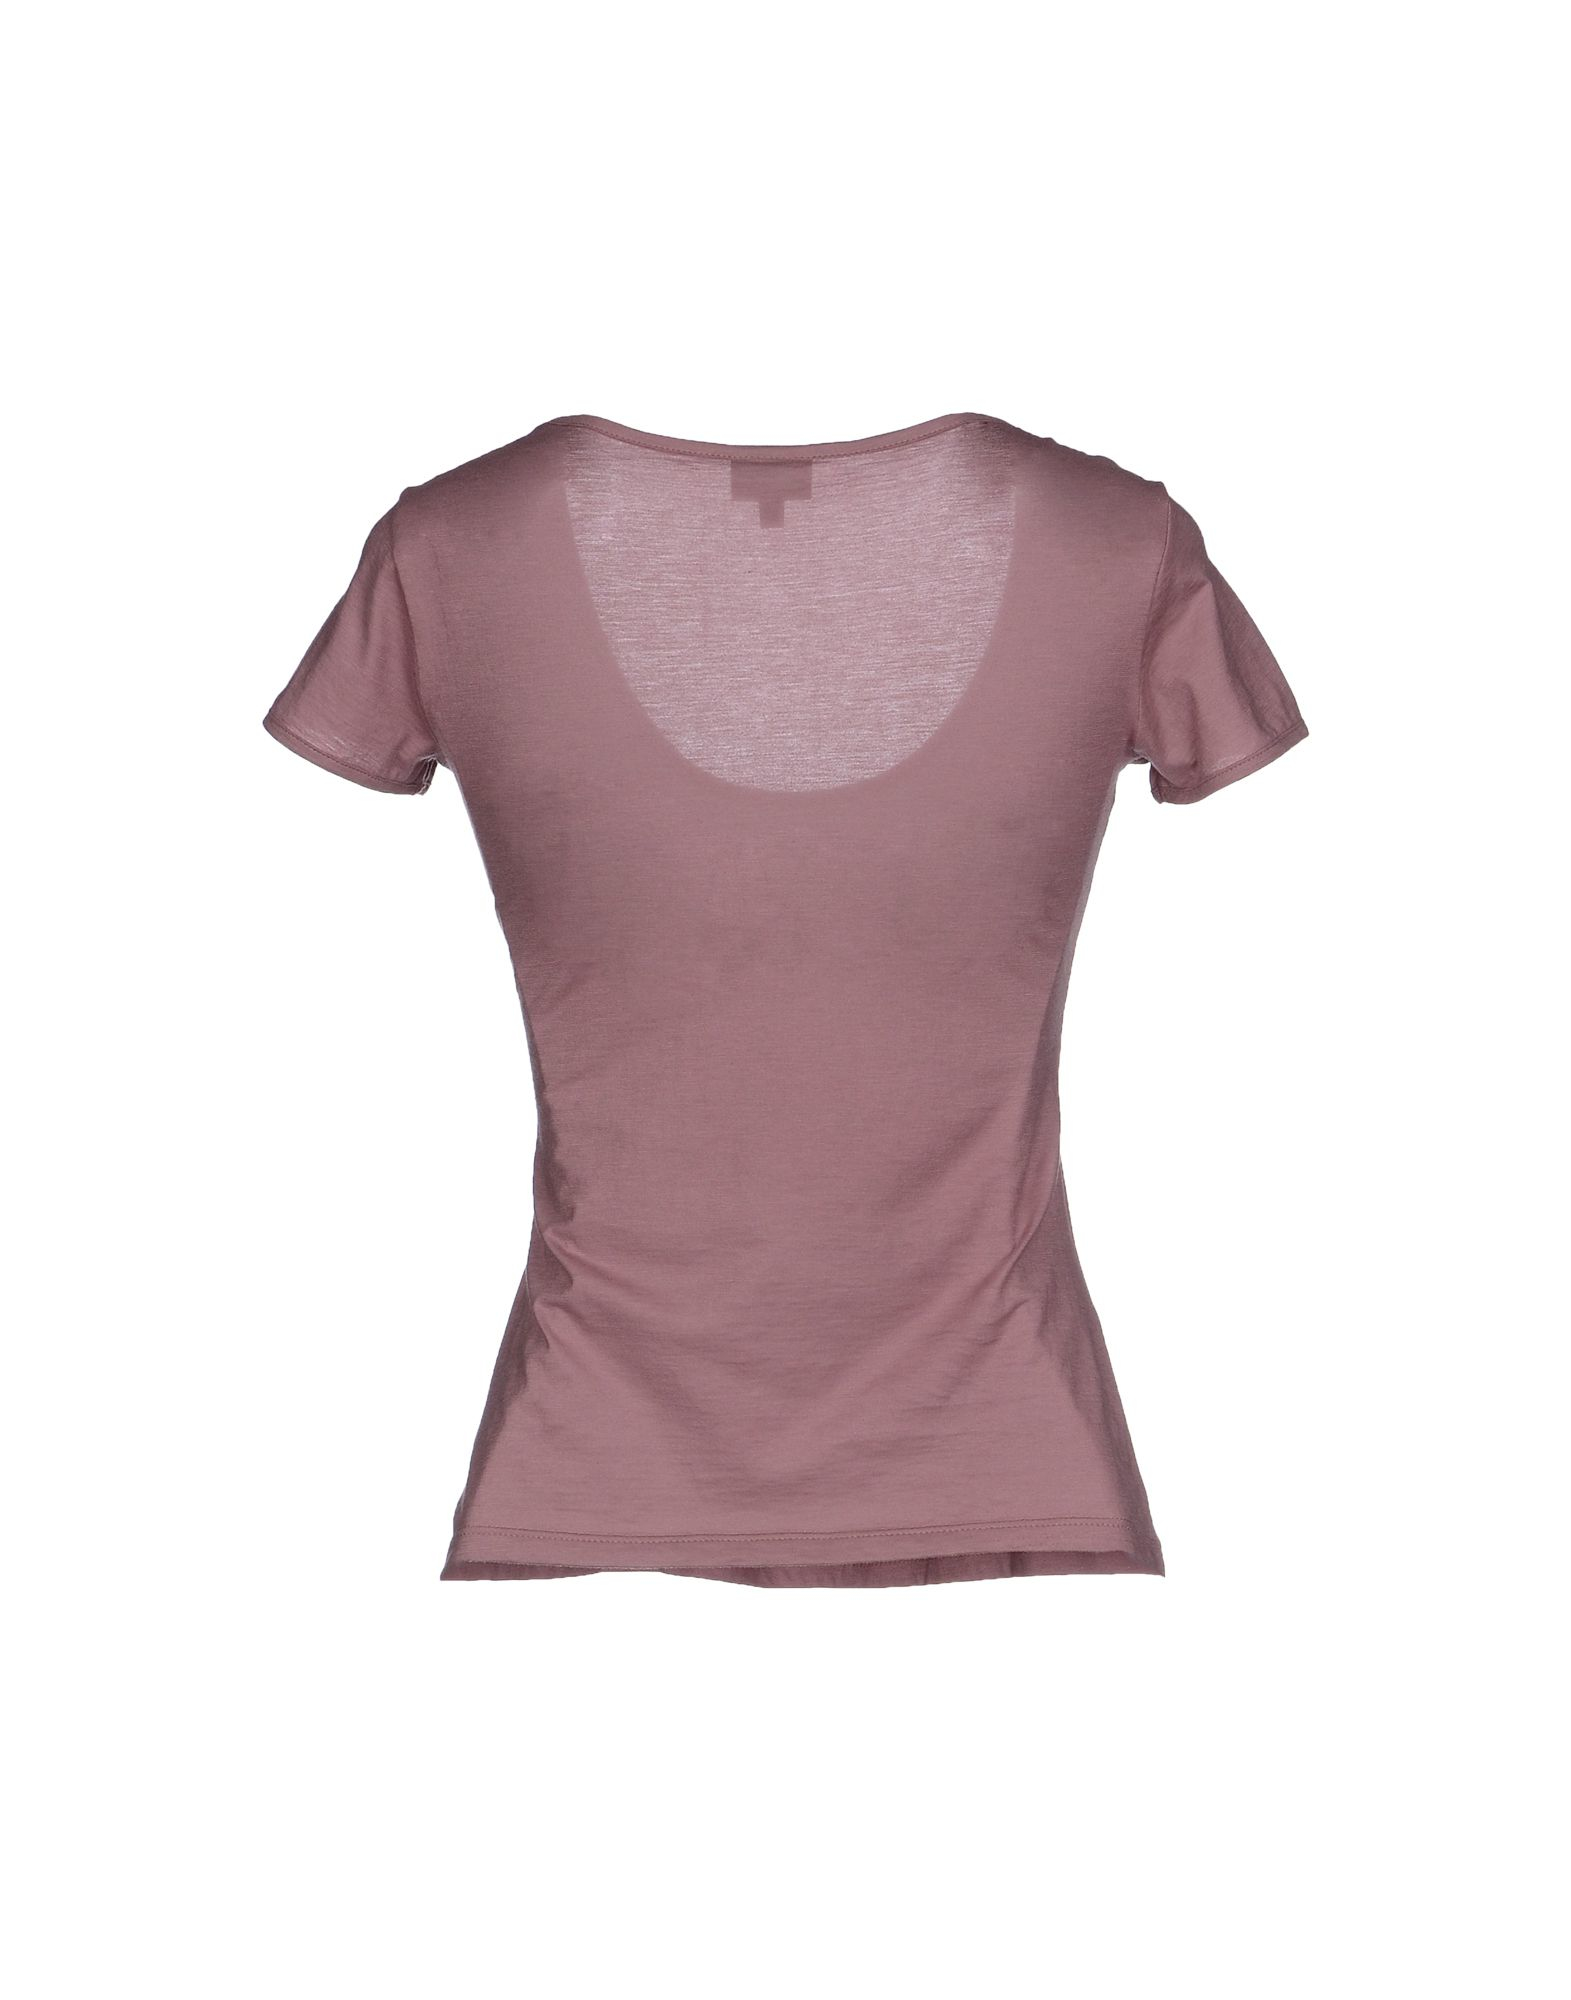 Exte t shirt in pink lyst for Pastel pink dress shirt